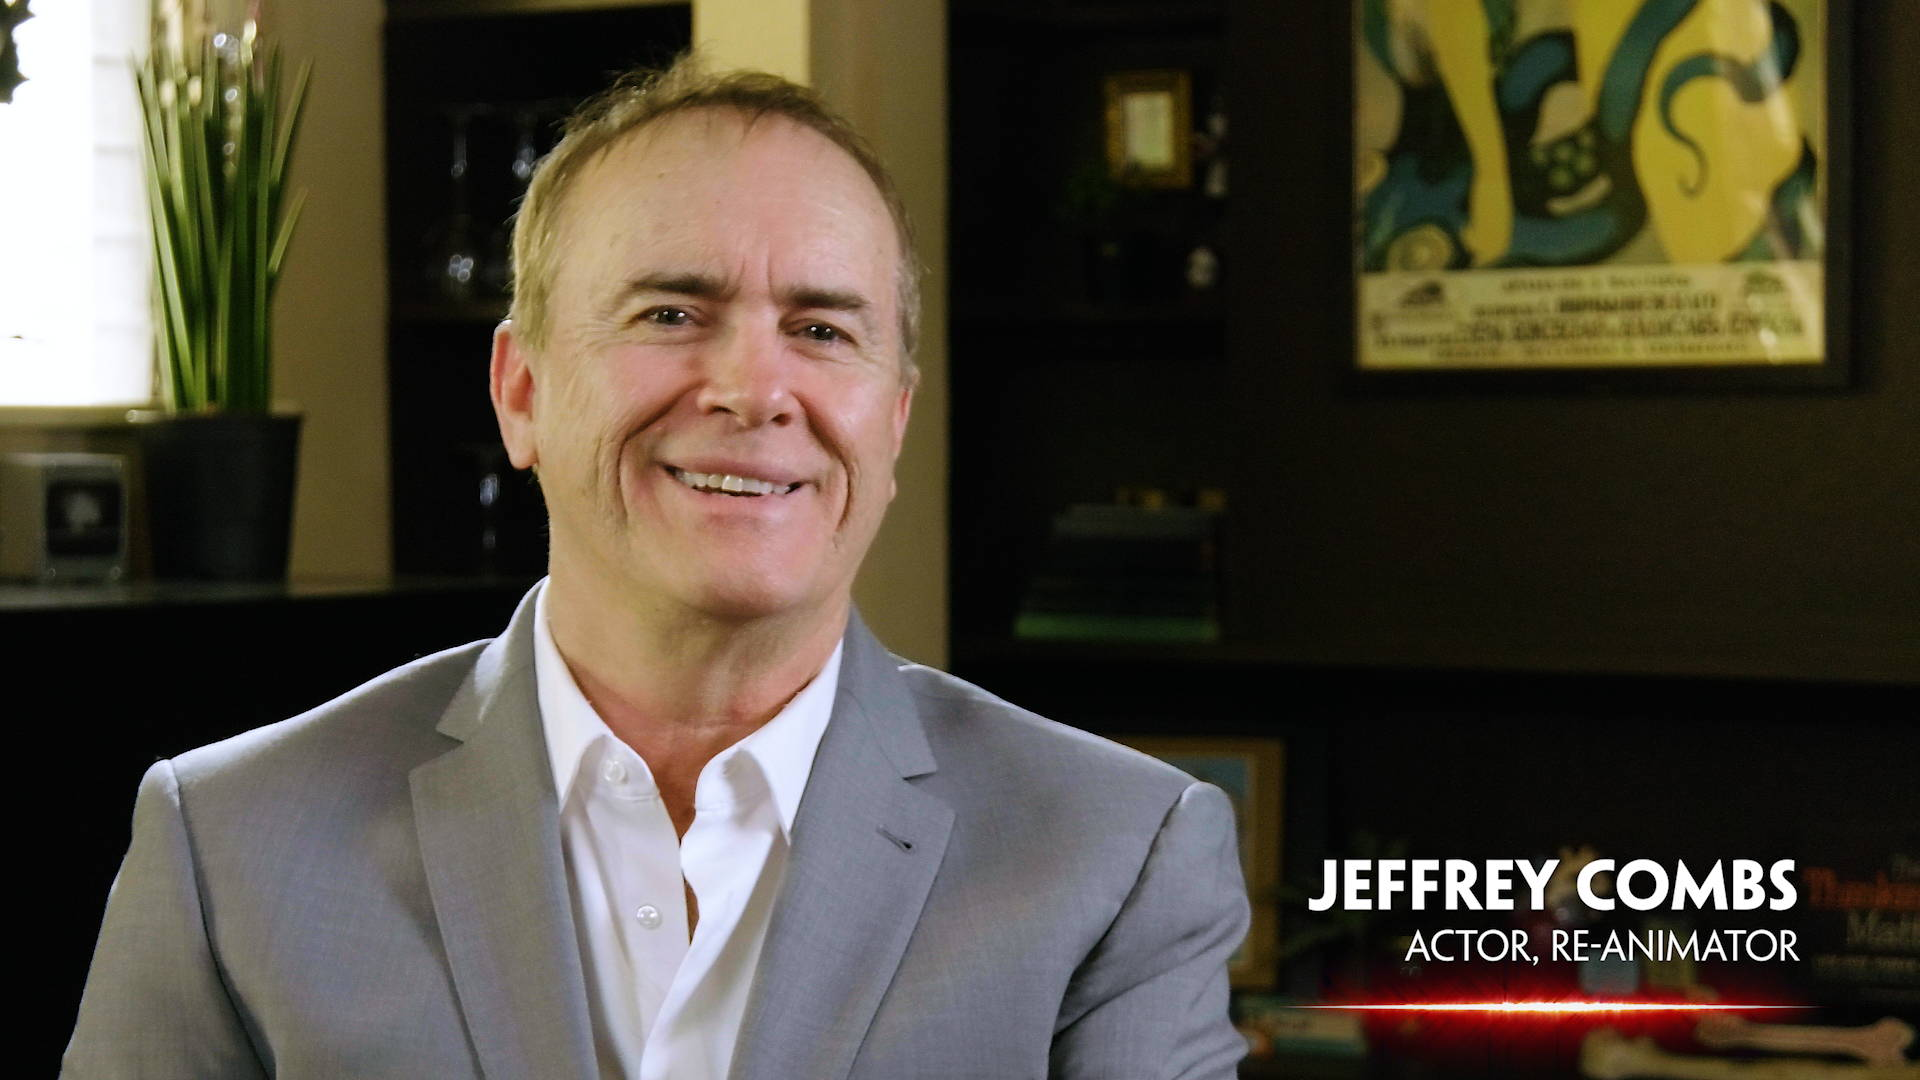 In Search of Darkness Part II: Jeffrey Combs interview